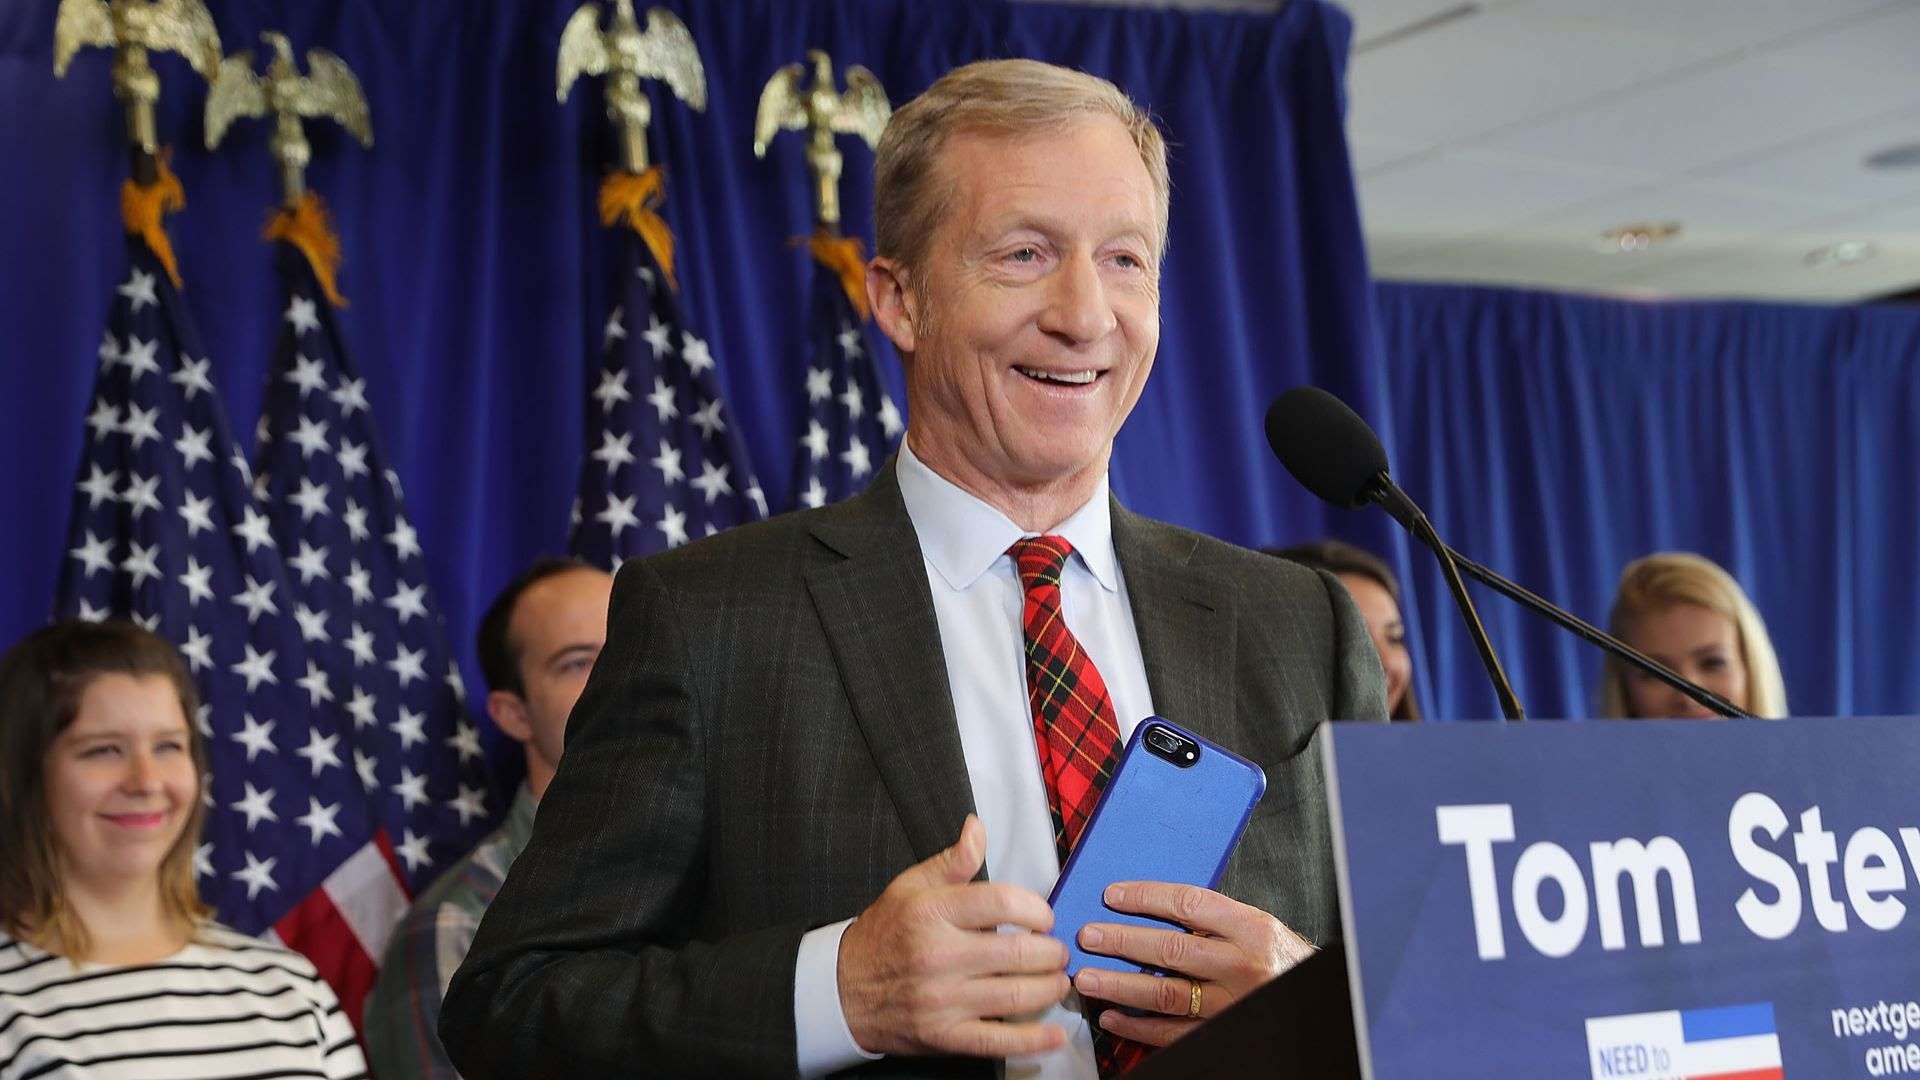 Tom Steyer smiling at a podium.